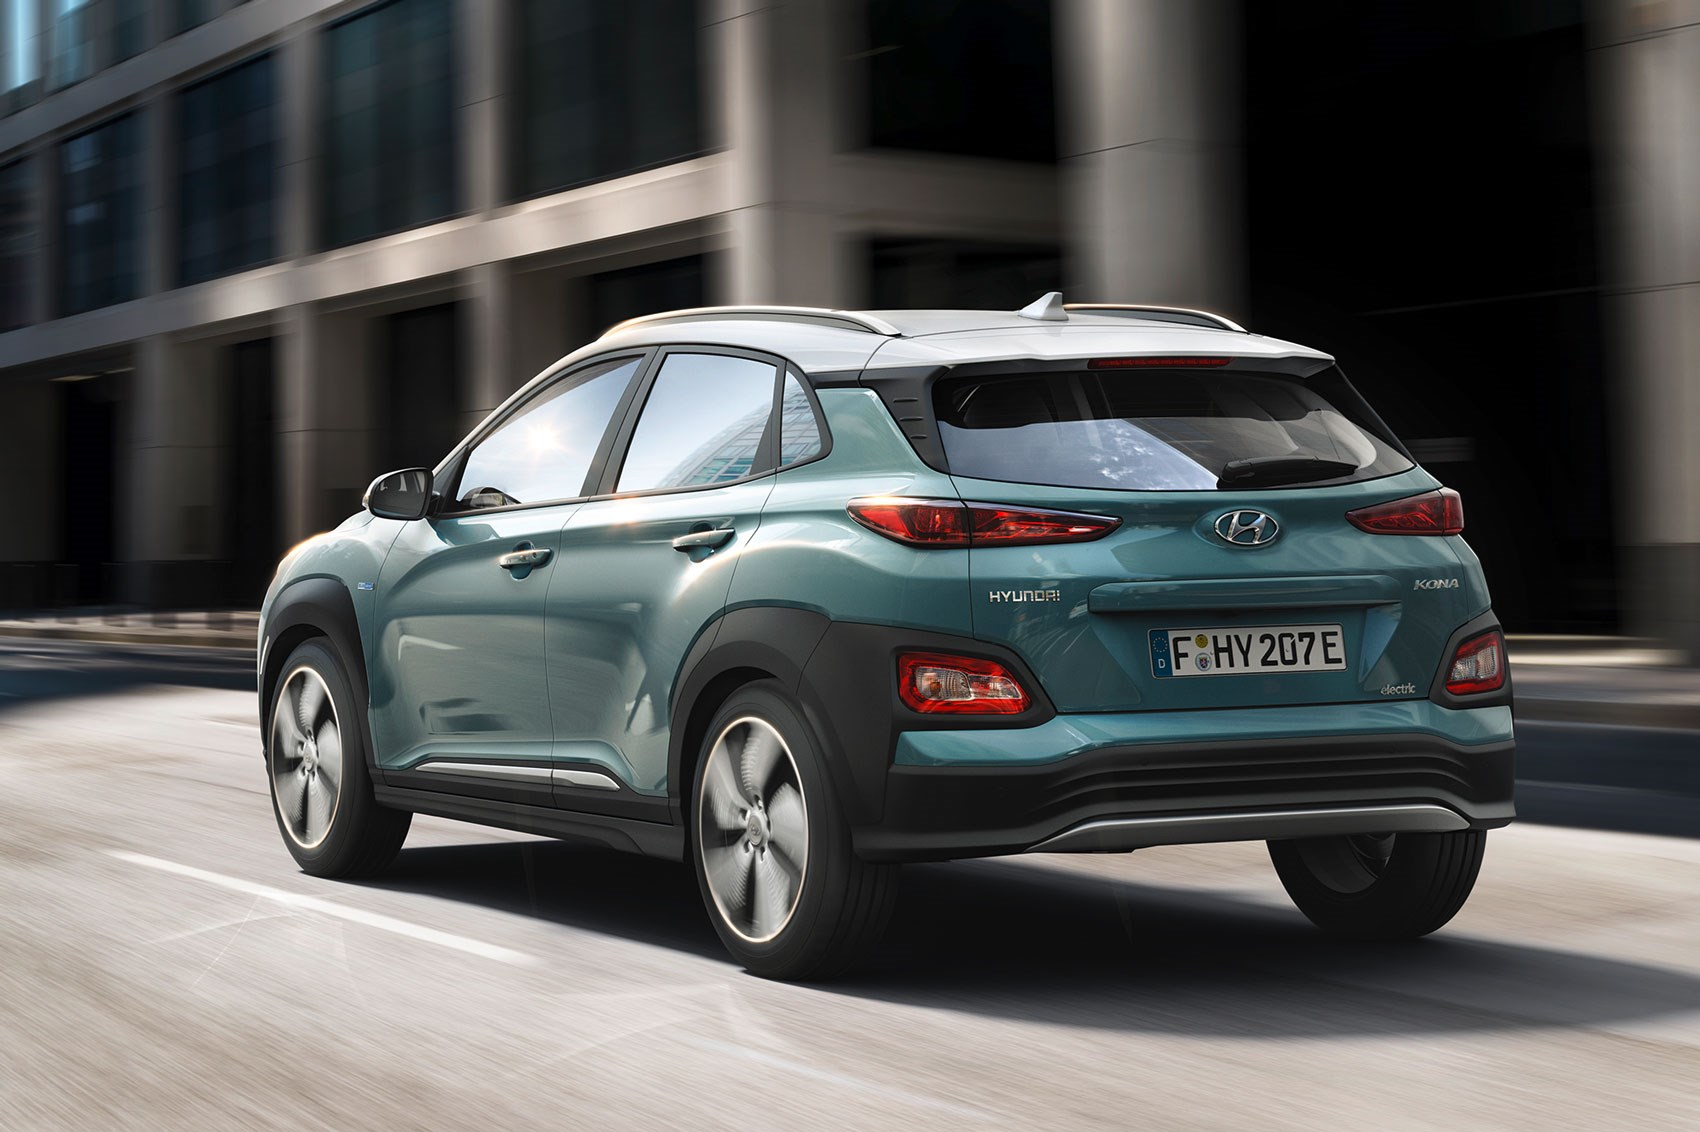 new hyundai kona suv specs pics and details on electric model by car magazine. Black Bedroom Furniture Sets. Home Design Ideas